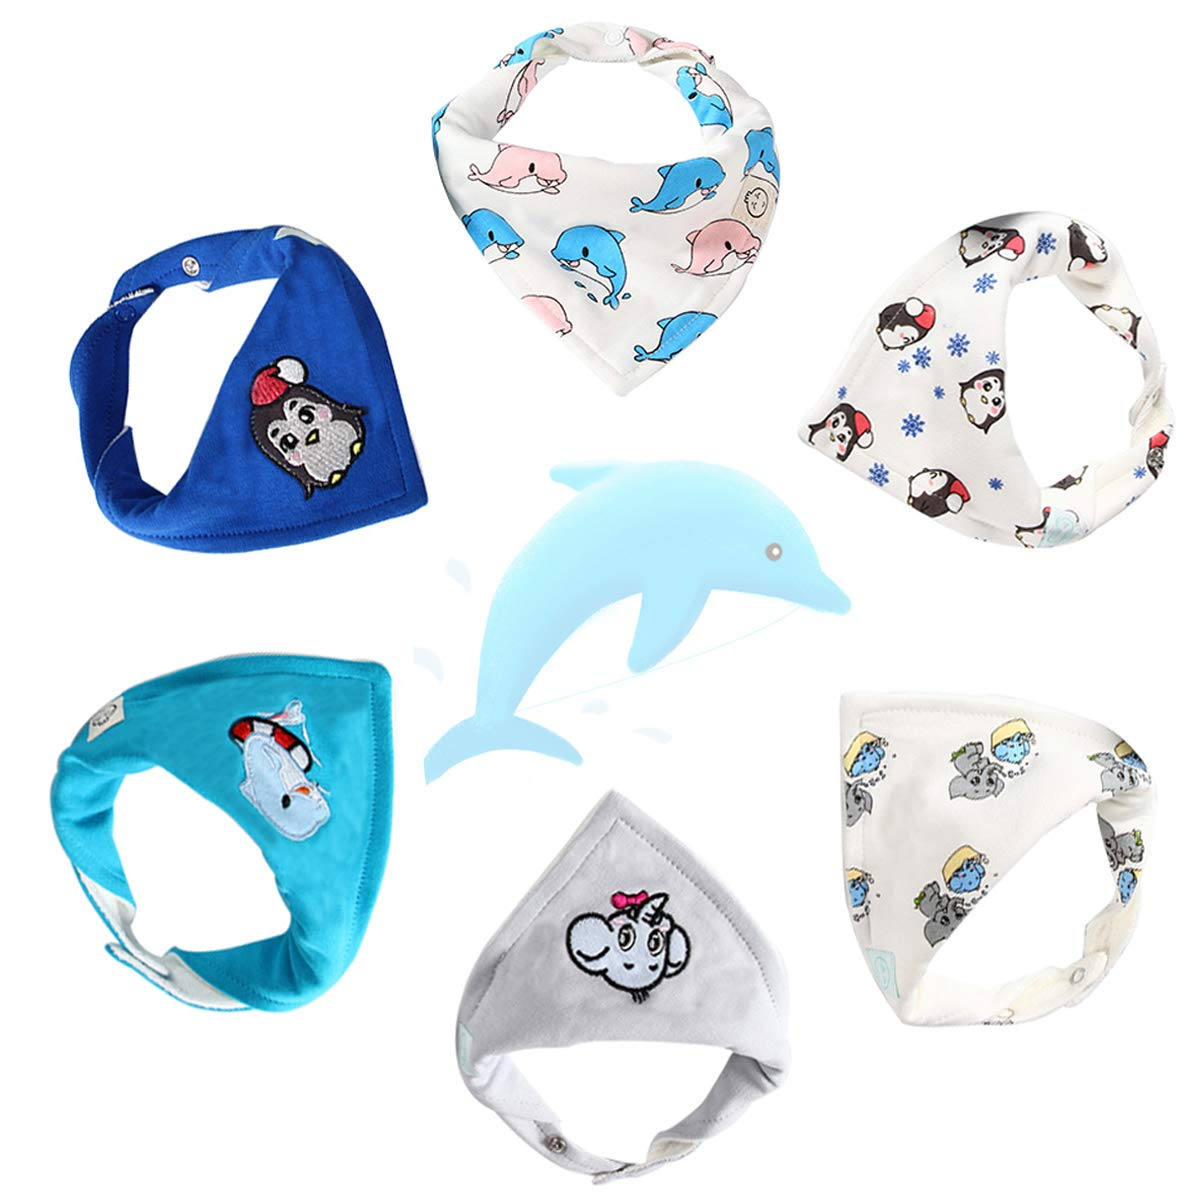 Soft and Absorbent Cute Baby Bibs for Teething Drooling Perfect Baby Shower Gift Set by Little Dimsum Christmas Bib 4 Pieces Baby Bandana Bib for Christmas